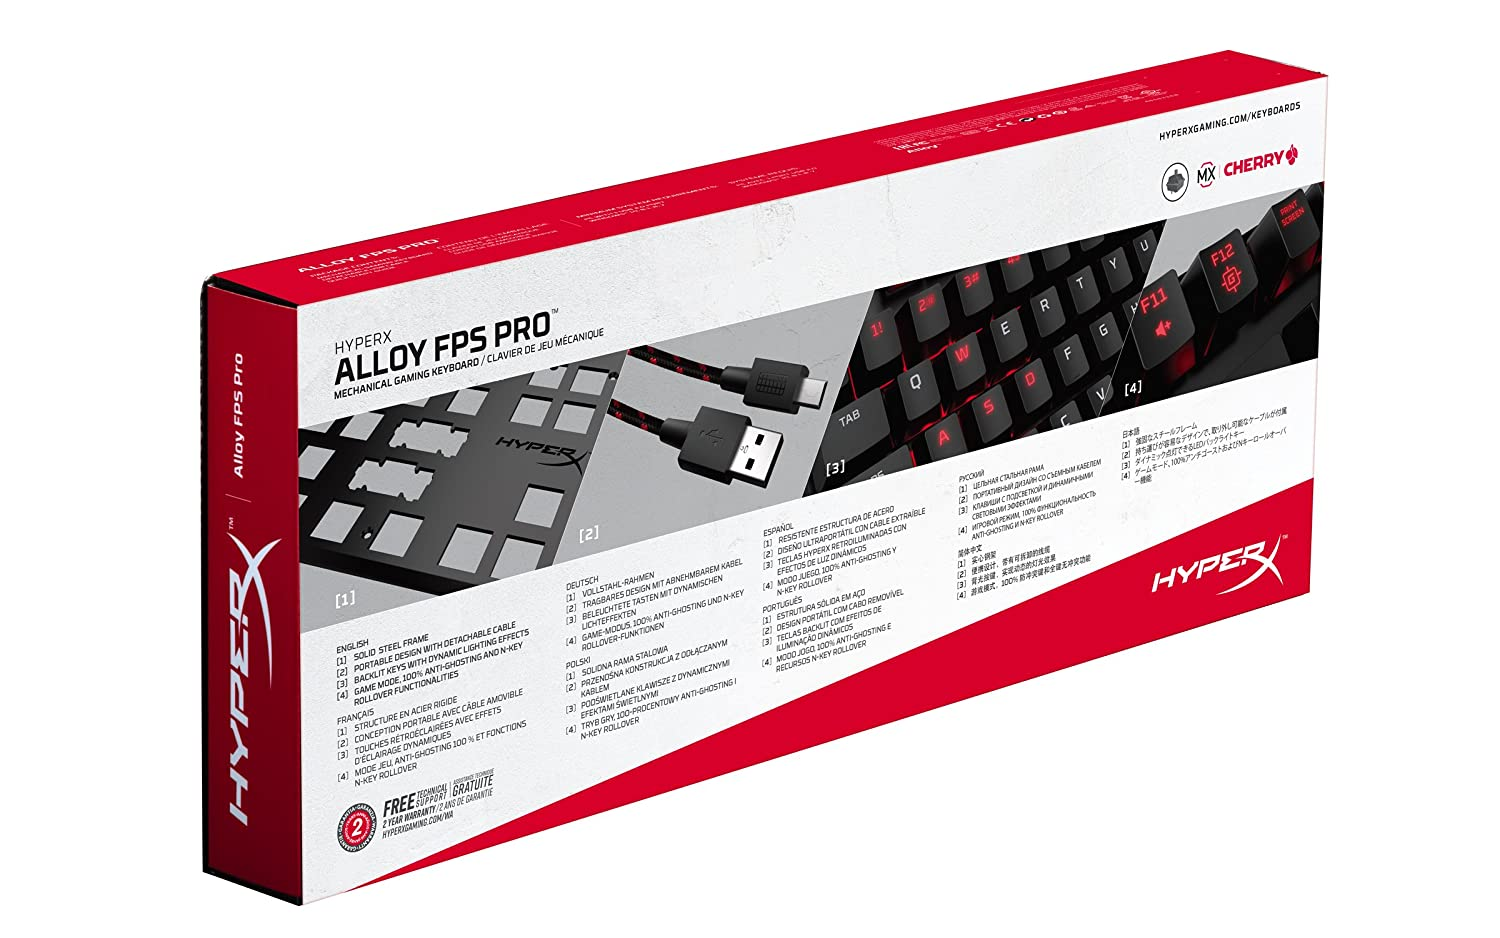 Cooling Gel Cherry MX Brown and HyperX Wrist Rest HyperX Alloy FPS